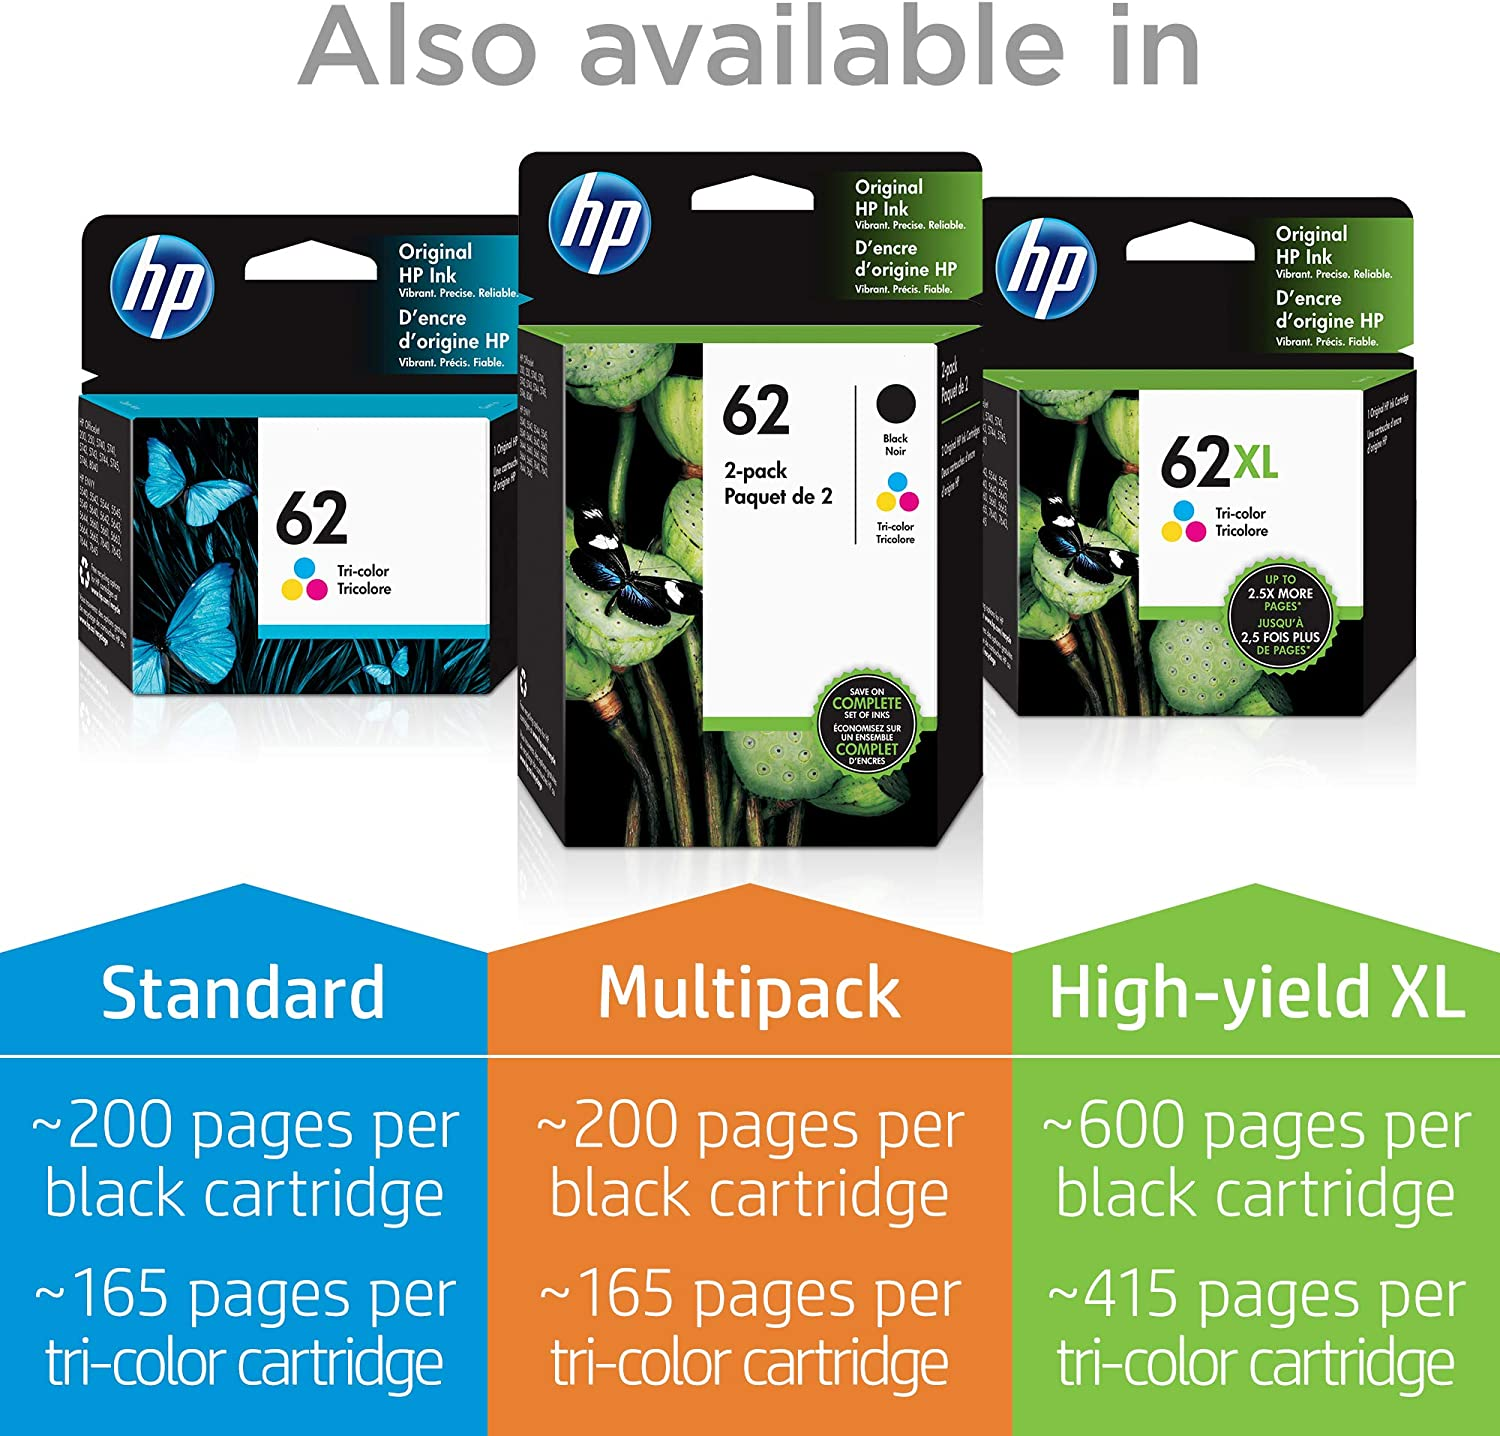 HP 62 cartucho de tinta Original Negro Multipack - Cartucho de tinta para impresoras (Original, Tinta a base de pigmentos, Negro, HP, HP Officejet 8040 with Neat® e-All-in-One, HP ENVY 8000 e-All-in-One,